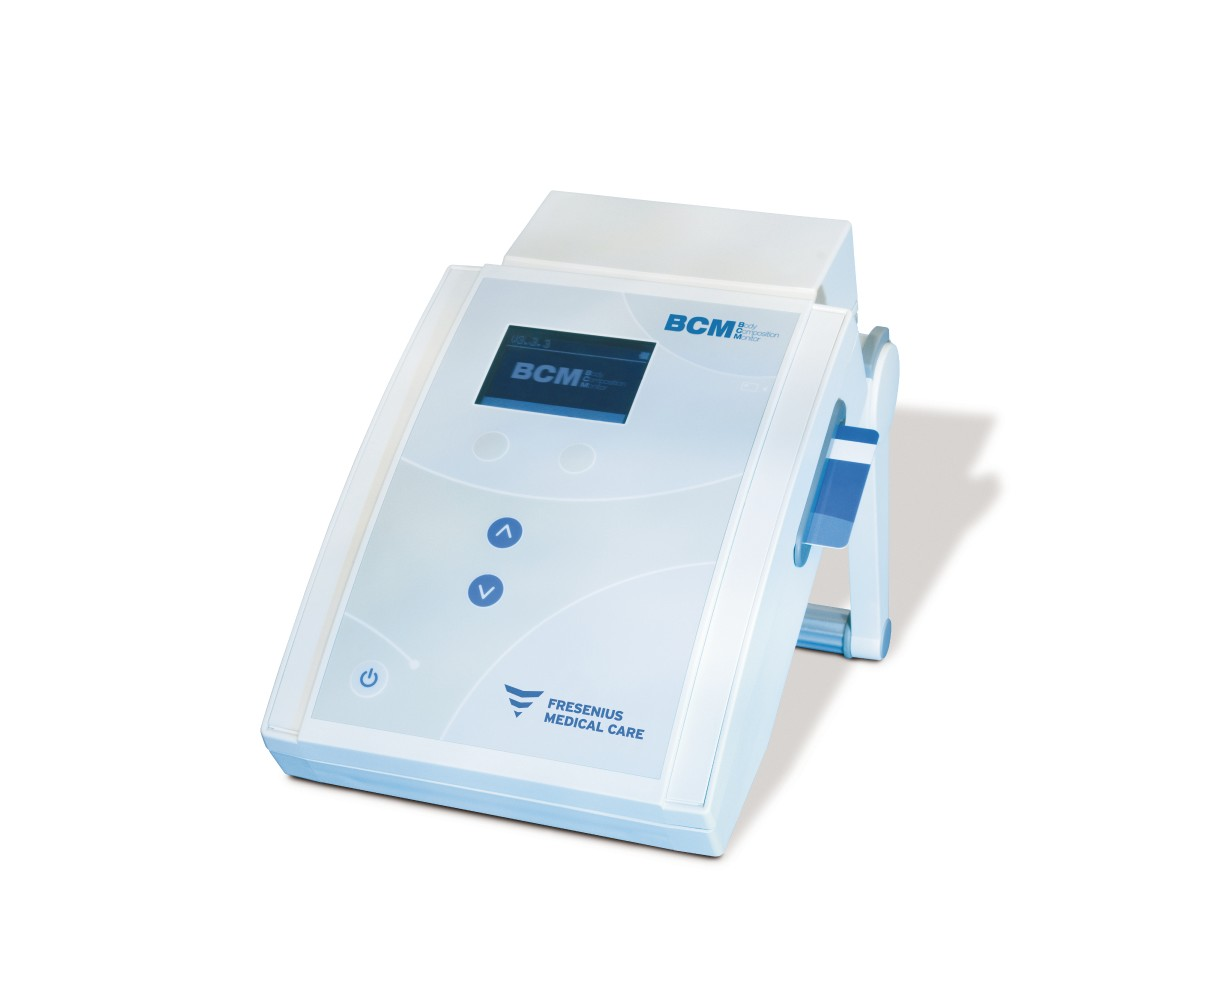 BCM-Body Composition Monitor